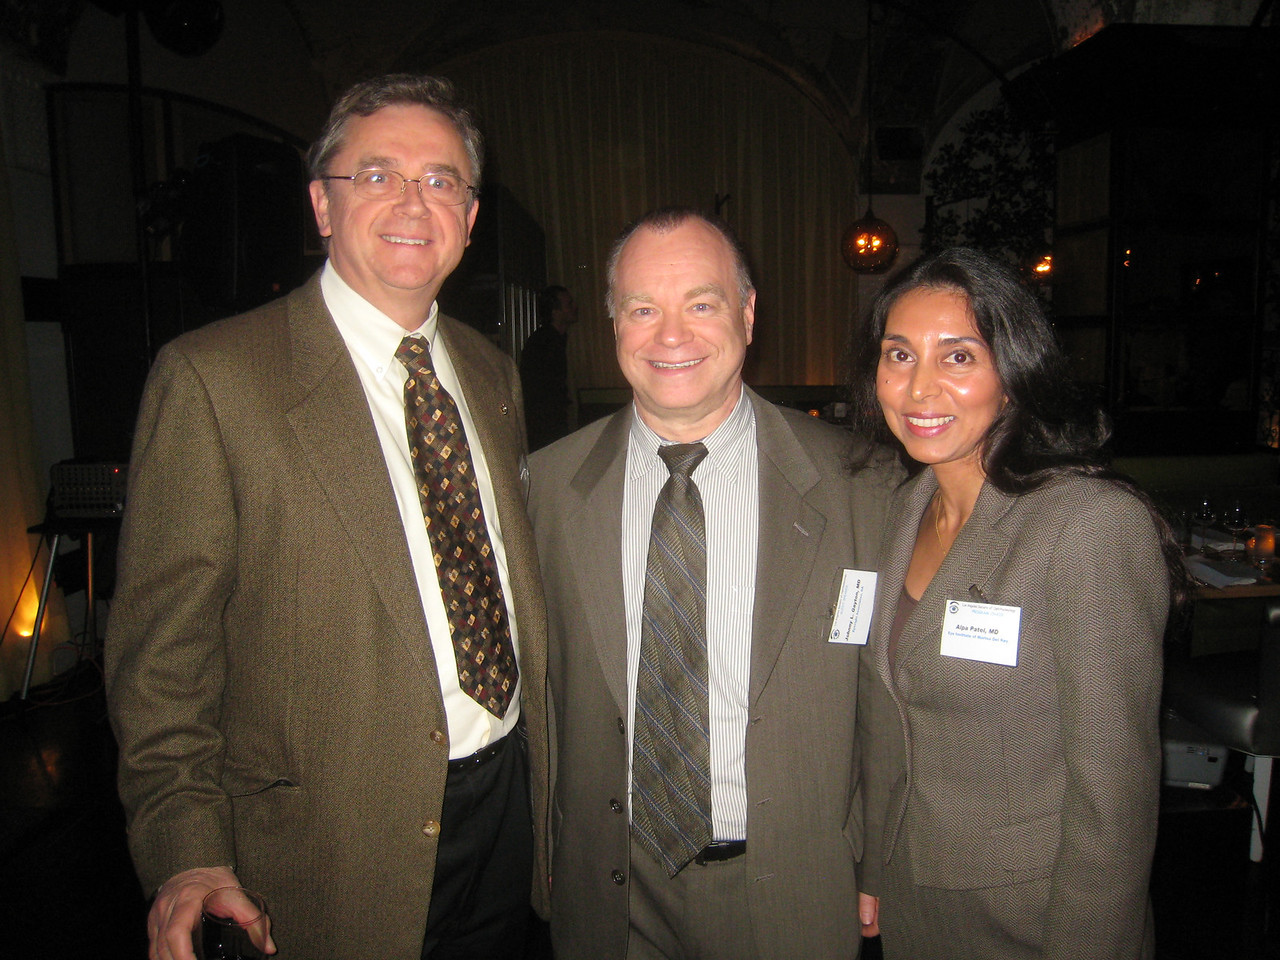 Jim Boyce, Speaker Johnny Gayton, Program Chair Alpa Patel